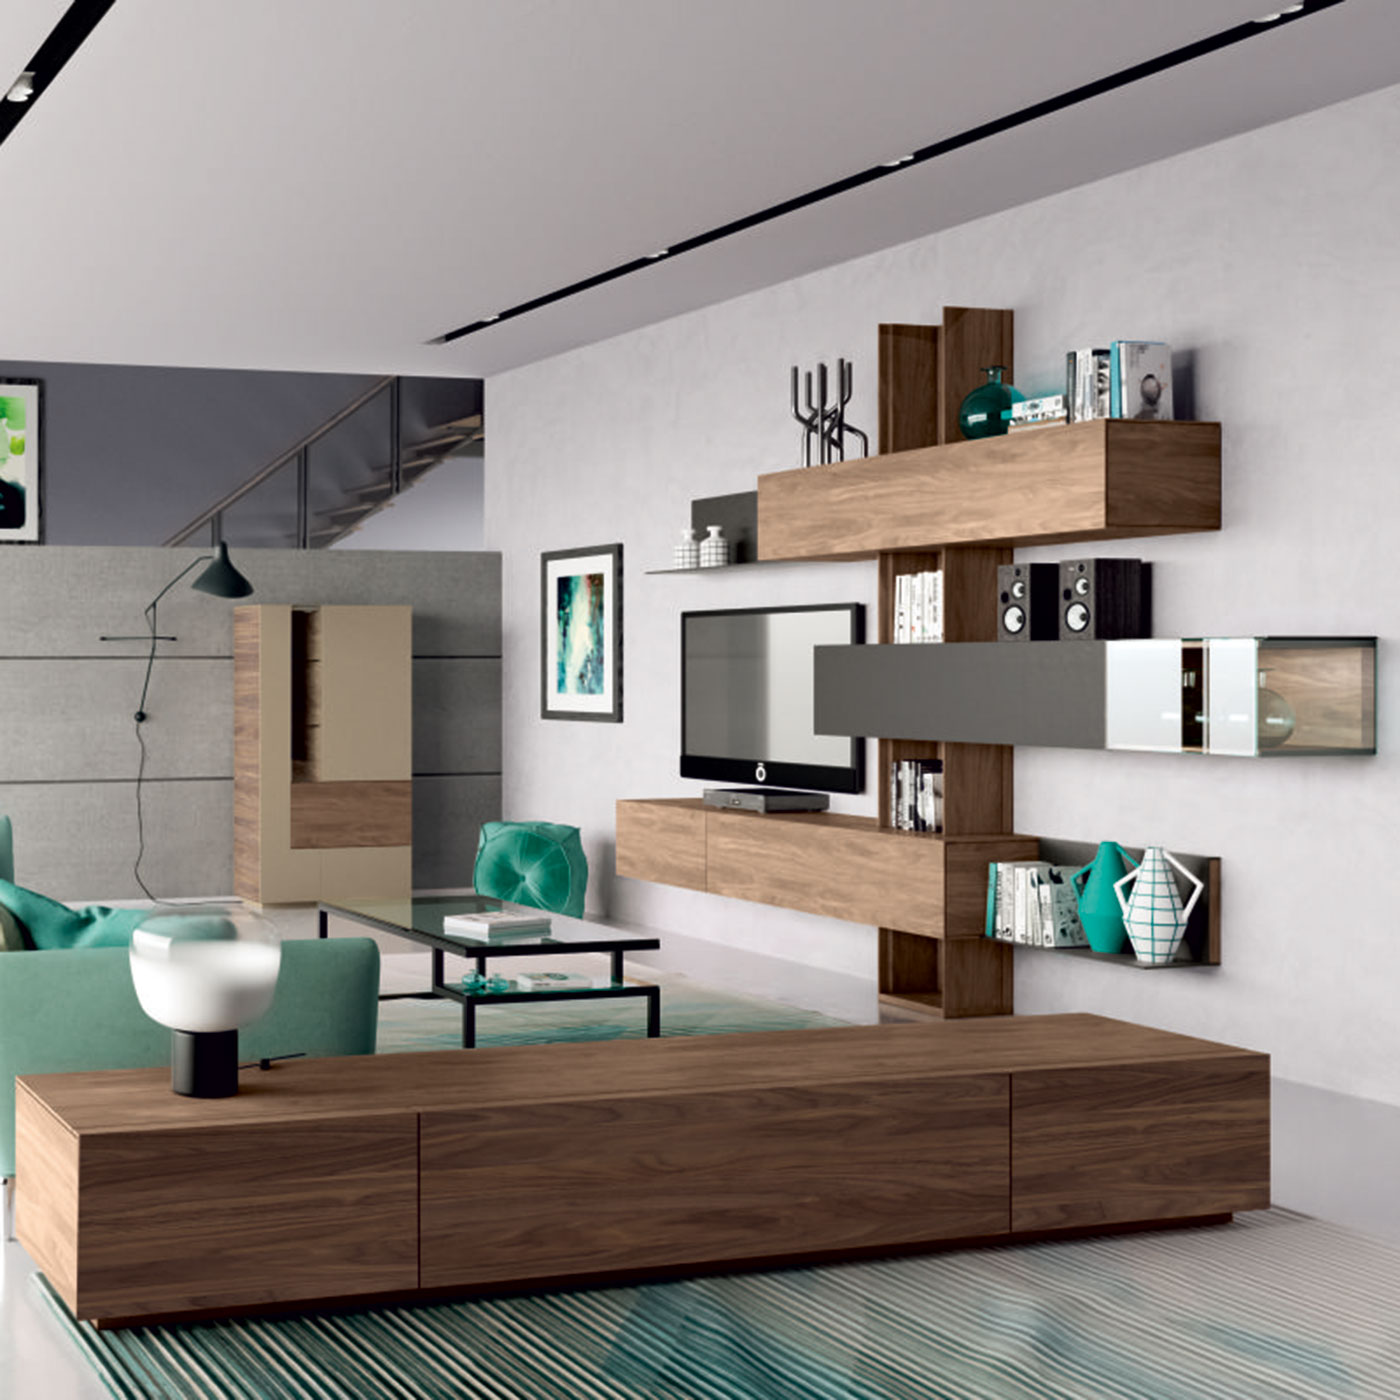 h lsta madera wohnkombination m bel b r ag. Black Bedroom Furniture Sets. Home Design Ideas